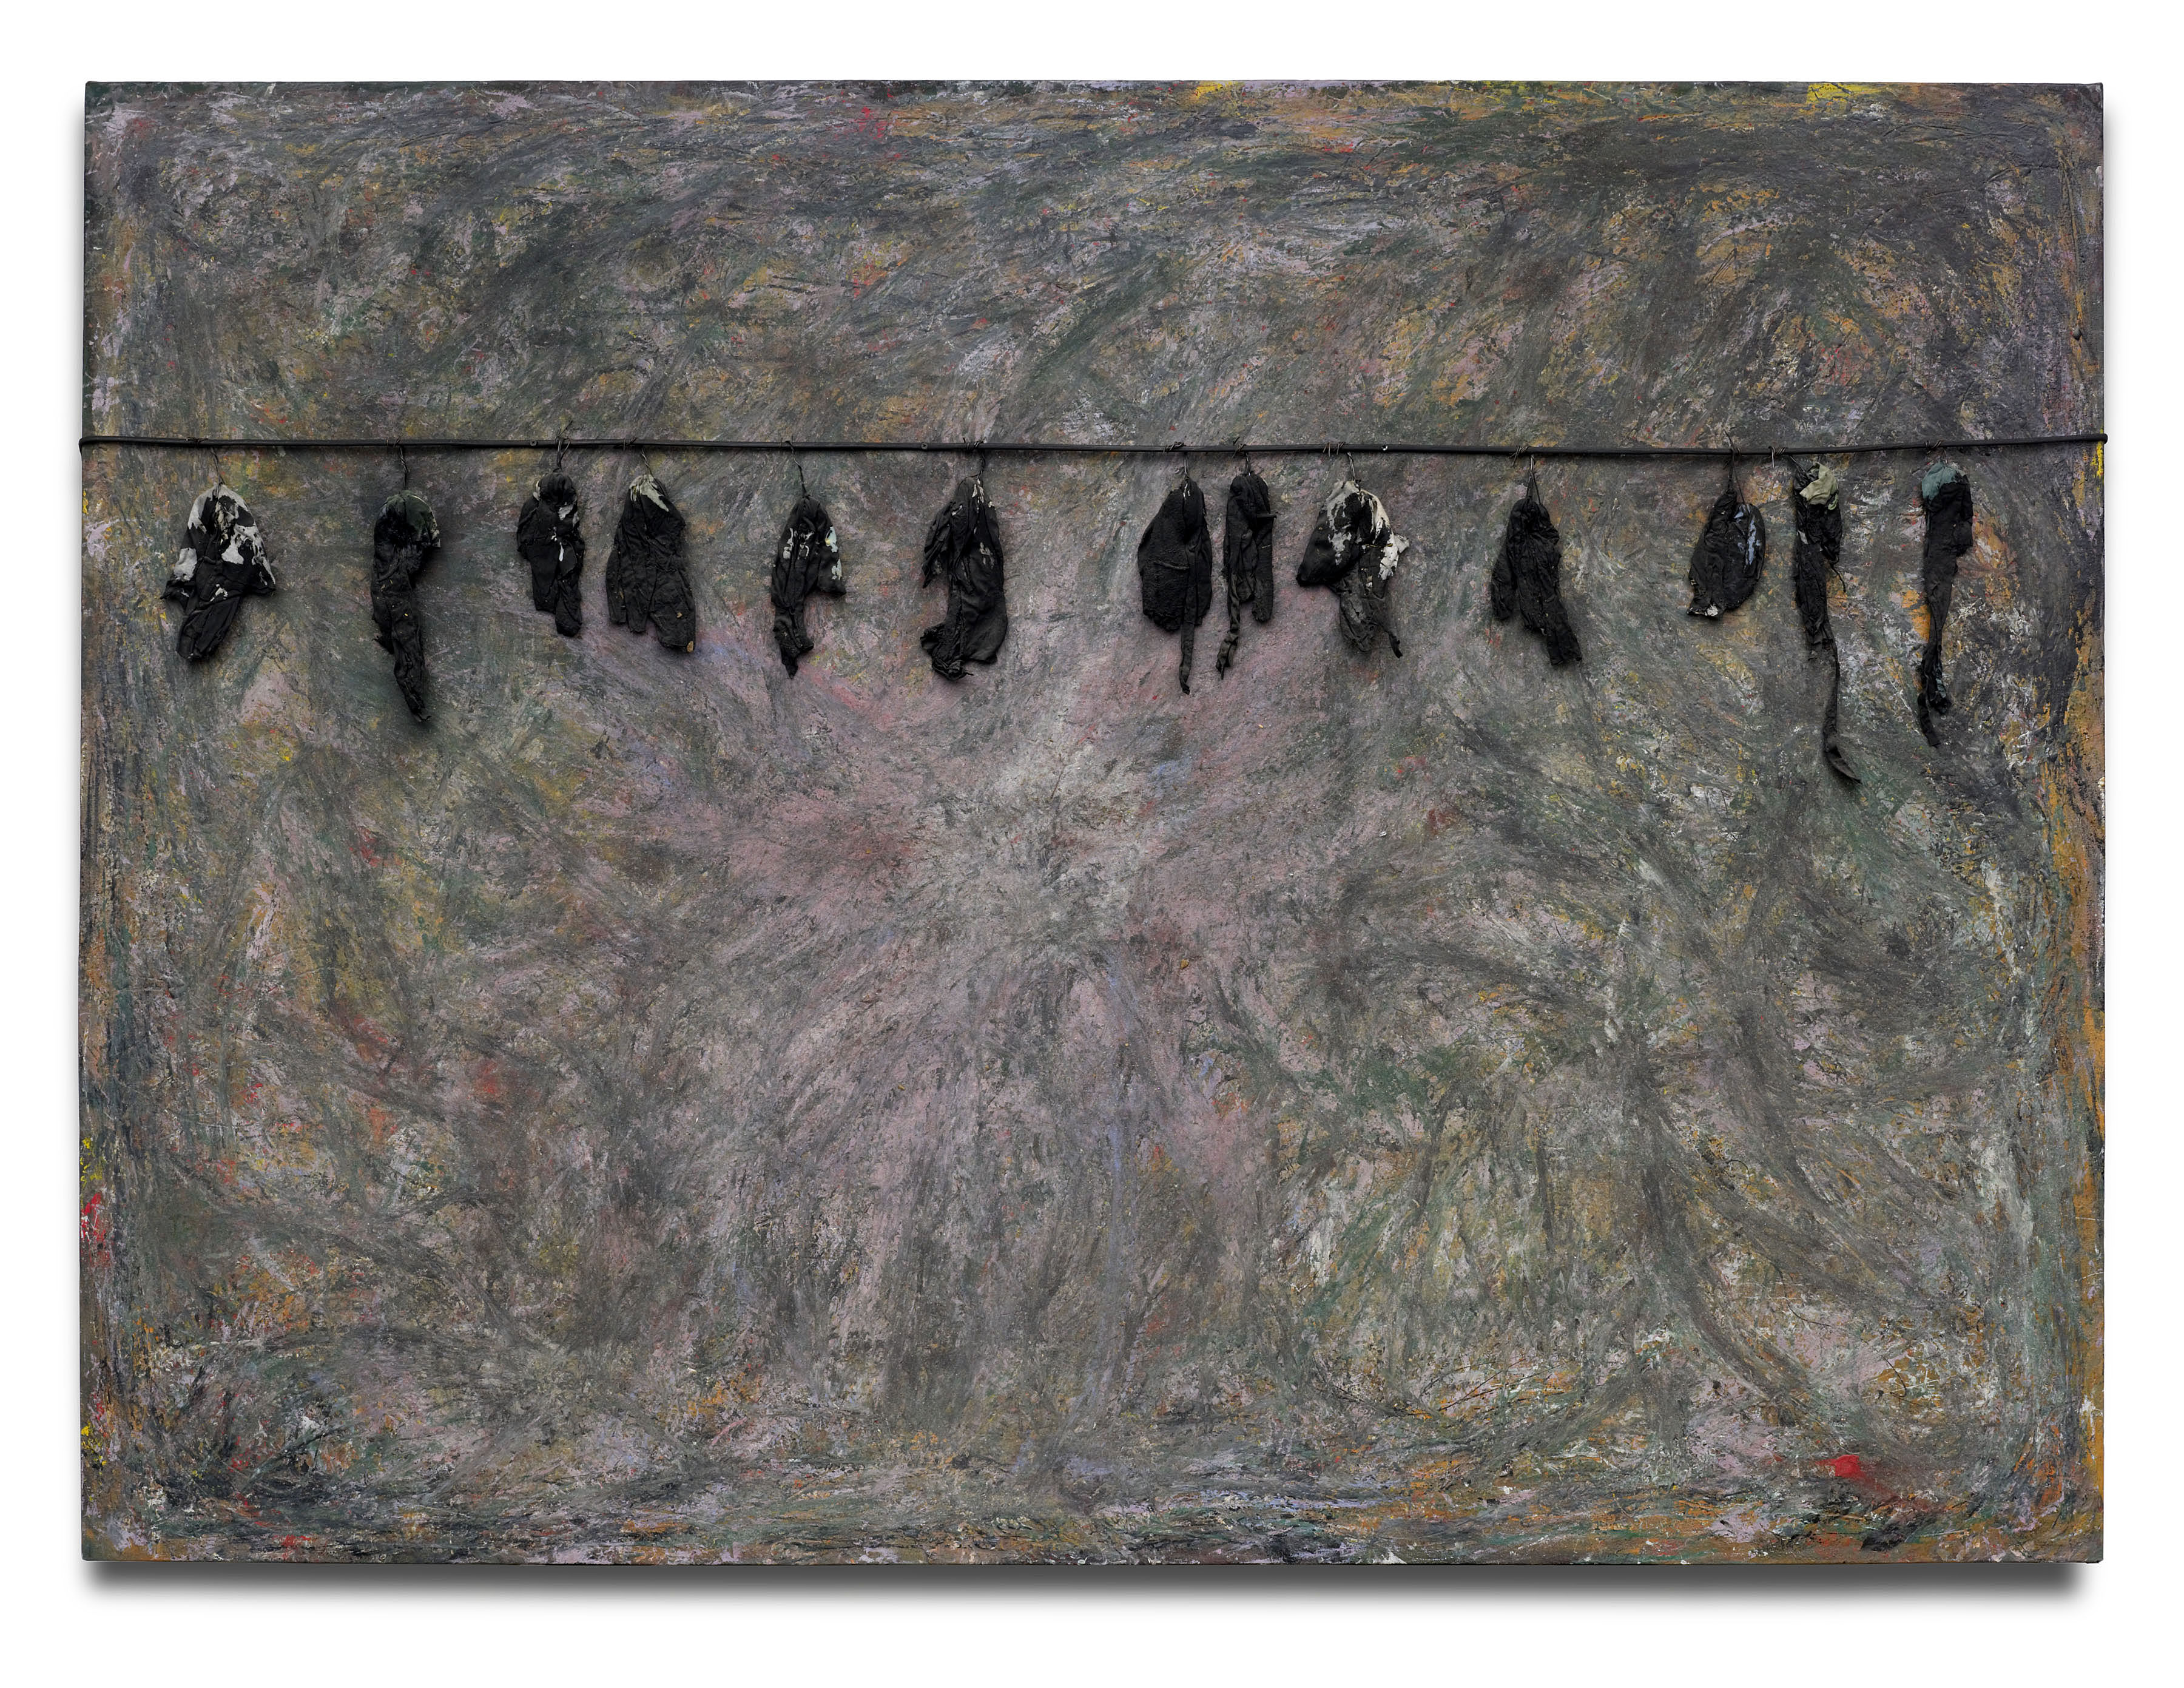 """""""Green Pastures — The Birds That Didn't Learn How to Fly,"""" 2008. © Thornton Dial, image by: Stephen Pitkin/Pitkin Studio Collection of the High Museum of Art"""